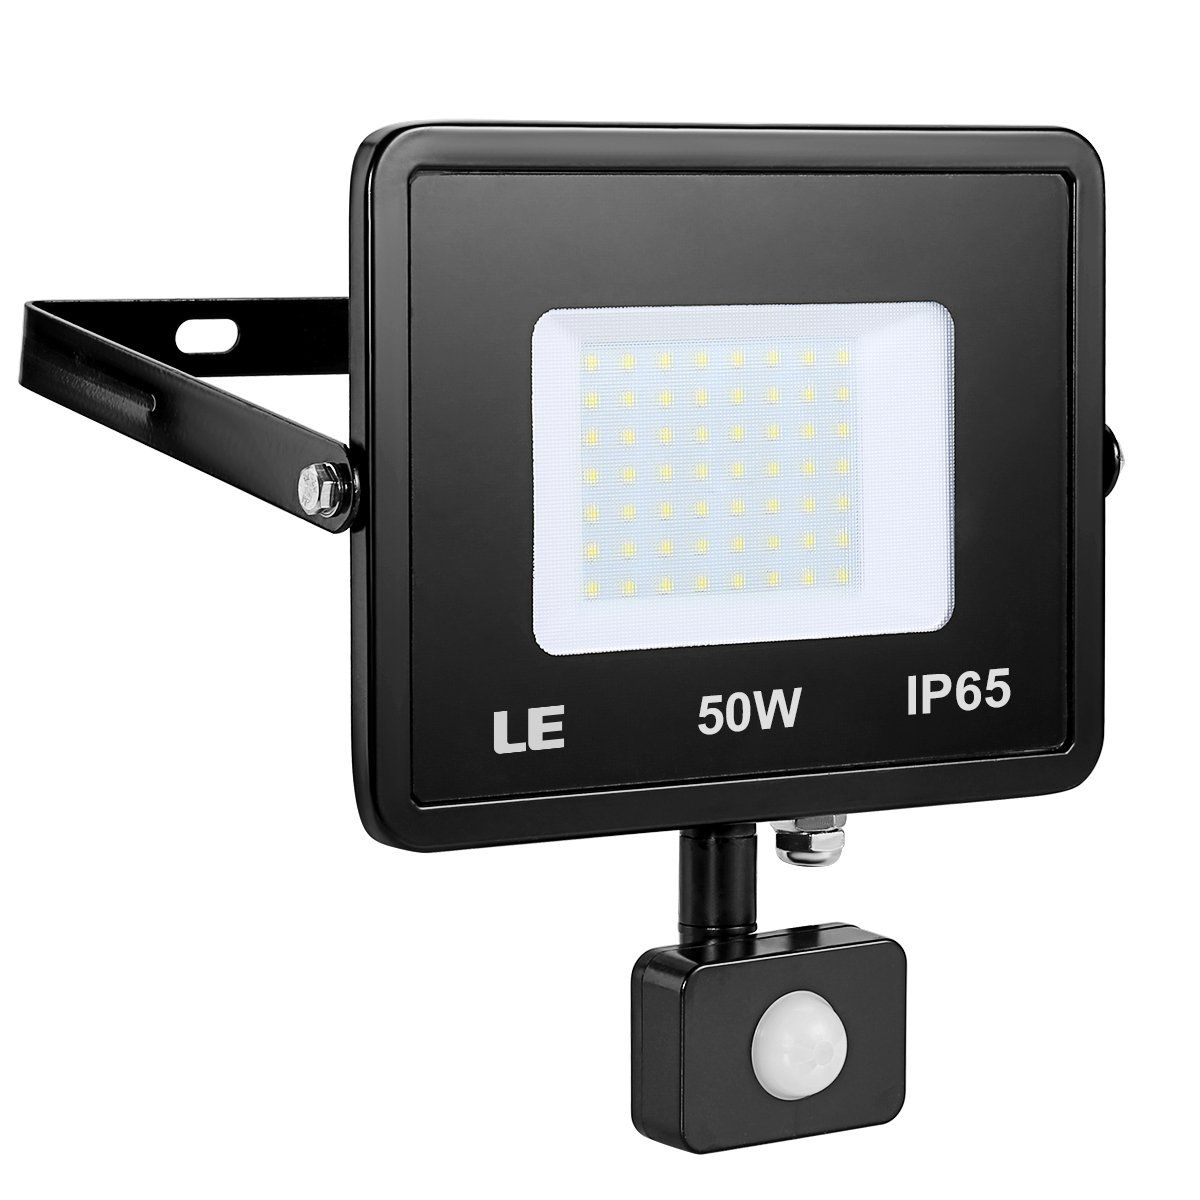 Outdoor Led Motion Lights Alluring Le 50W Motion Sensor Flood Light 4000Lm Outdoor Led Flood Lights Design Ideas